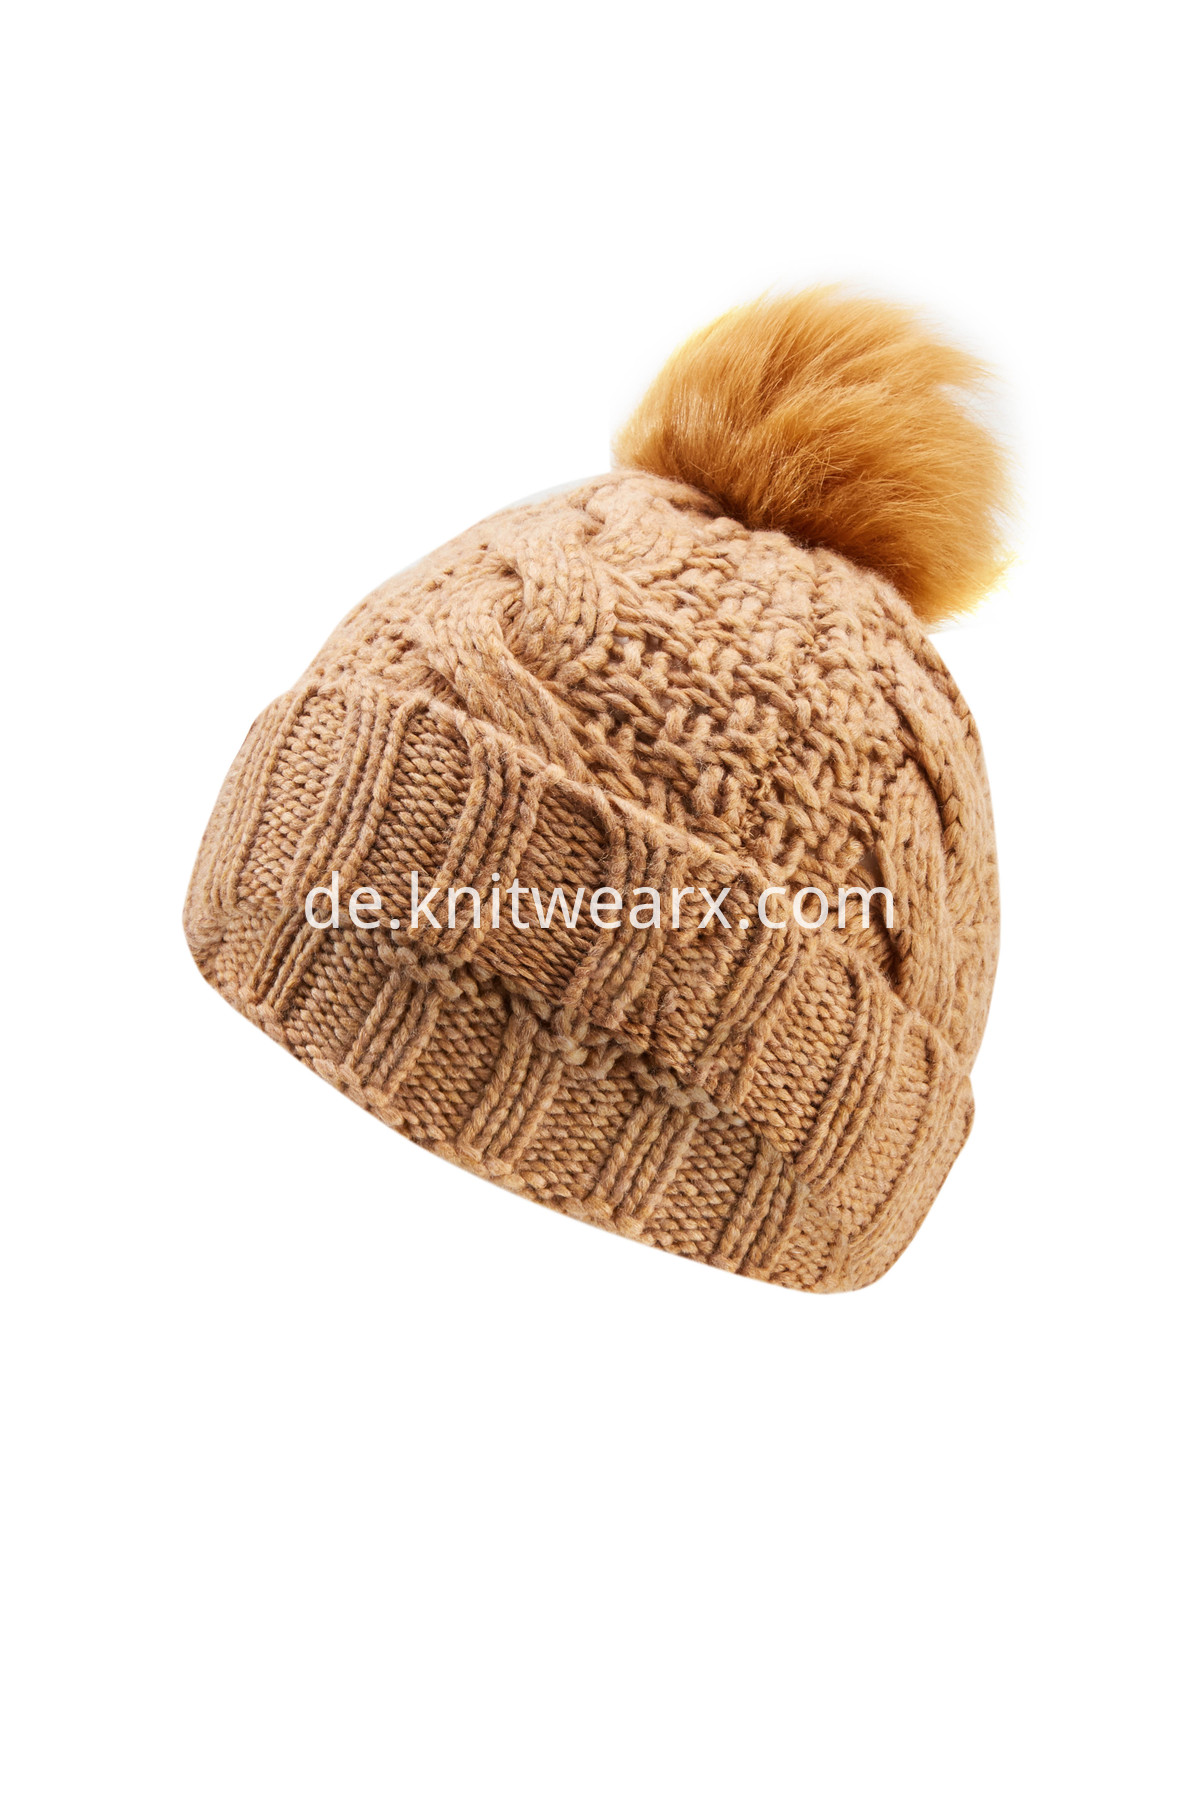 Girls' Winter Knitted Beanie Bobble Hat Faux Fur Ball Cap